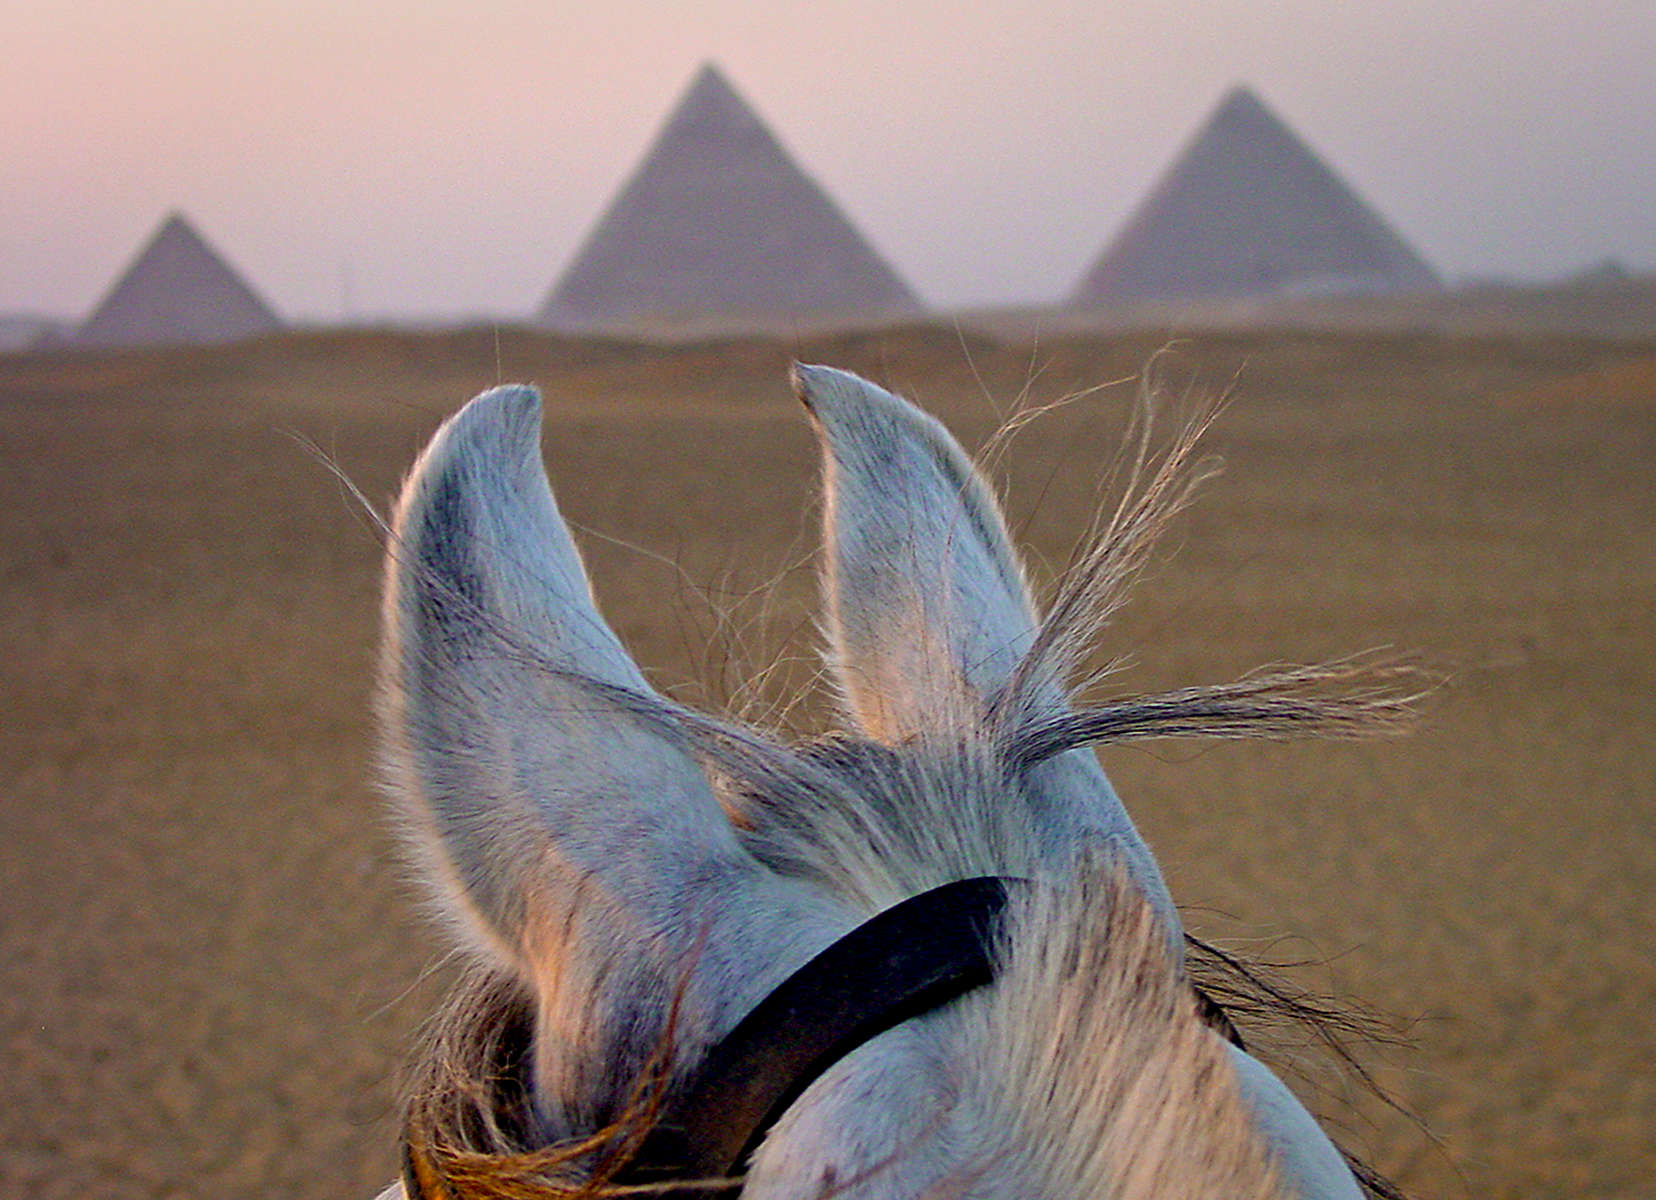 Sunset ride around the Pyramids of Giza.